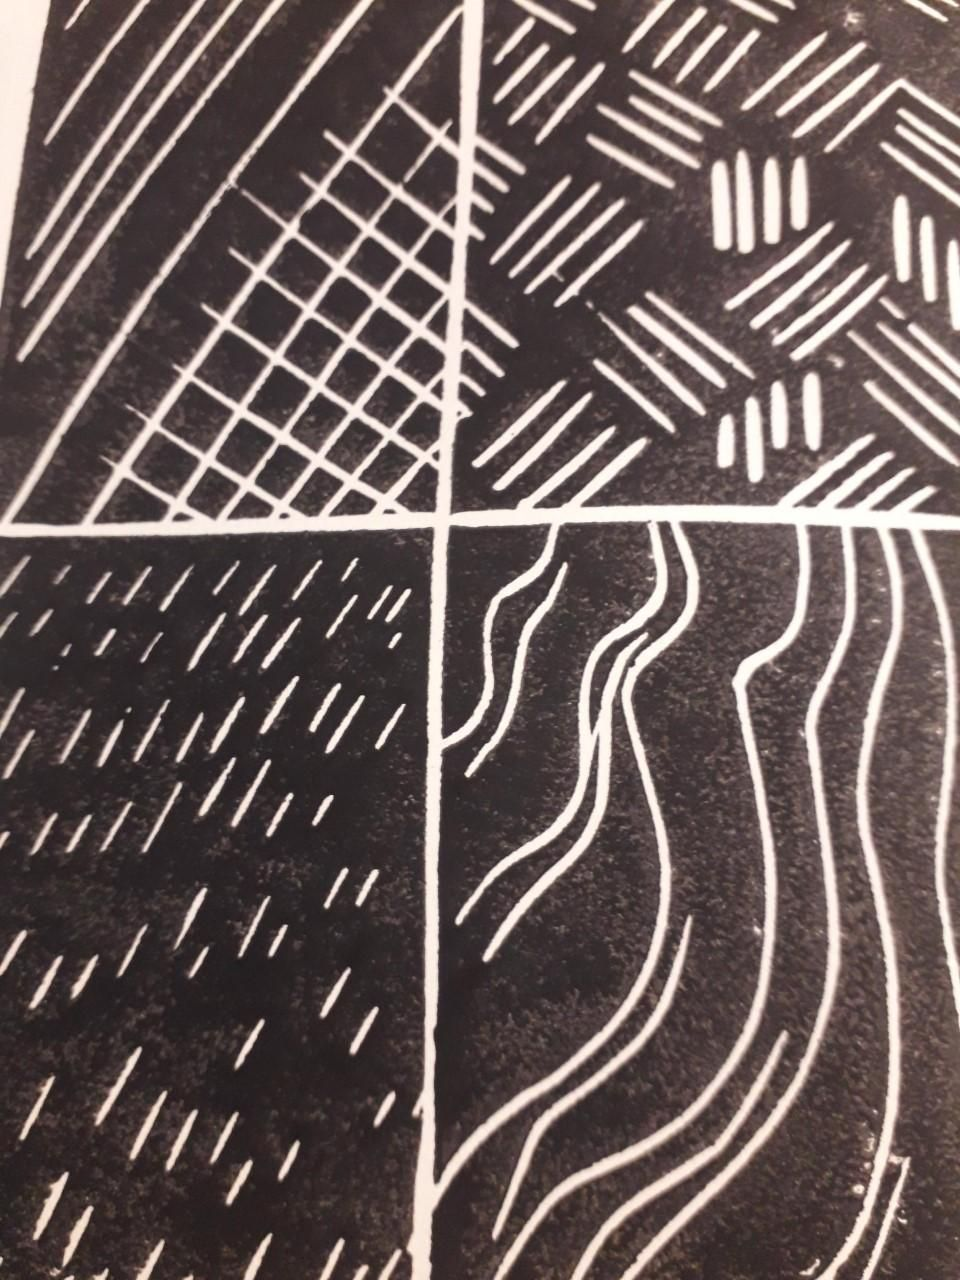 Trying New Patterns for Print - image 3 - student project